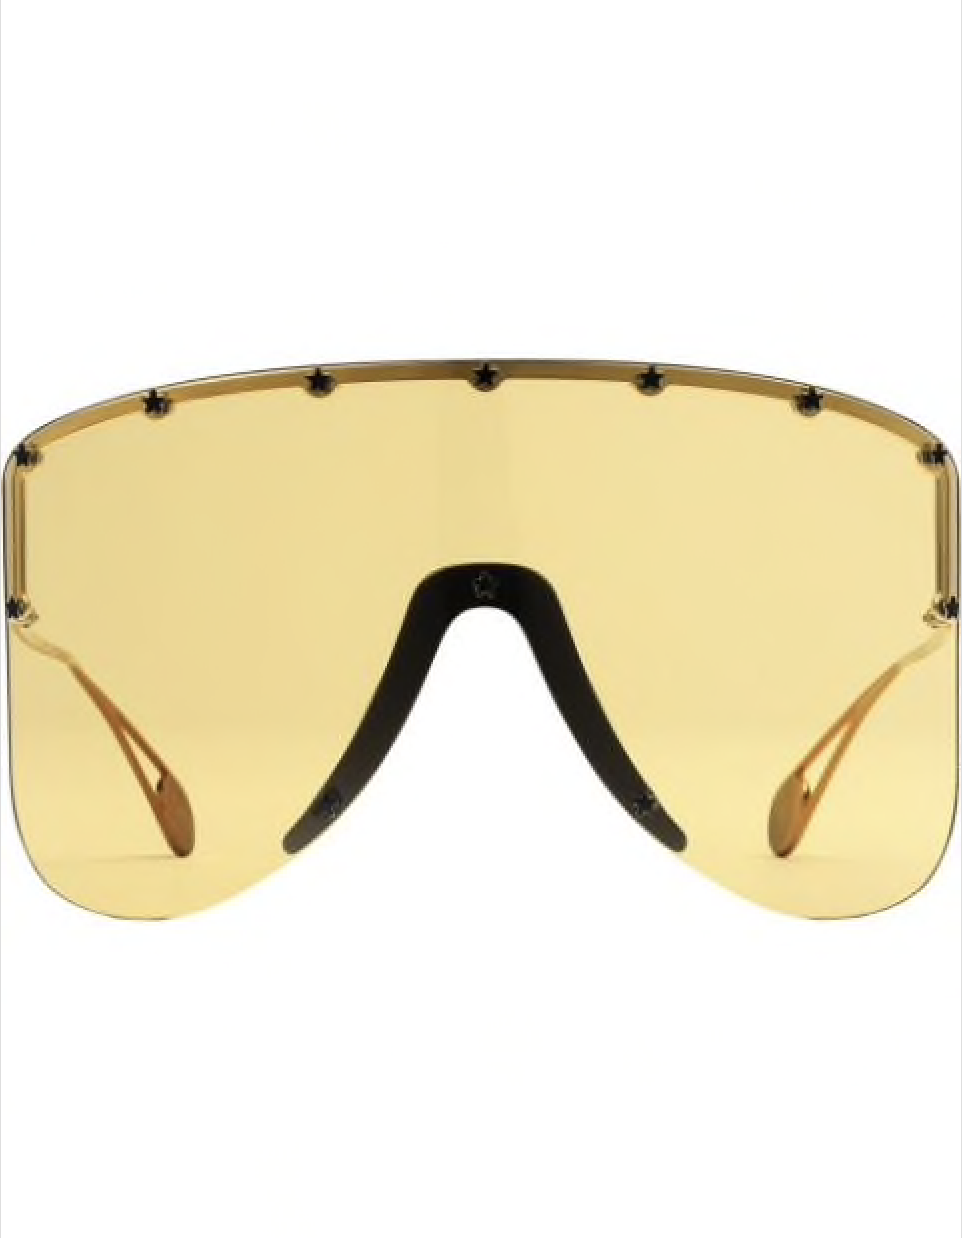 GUCCI EYEWEAR mask sunglasses.jp2.png